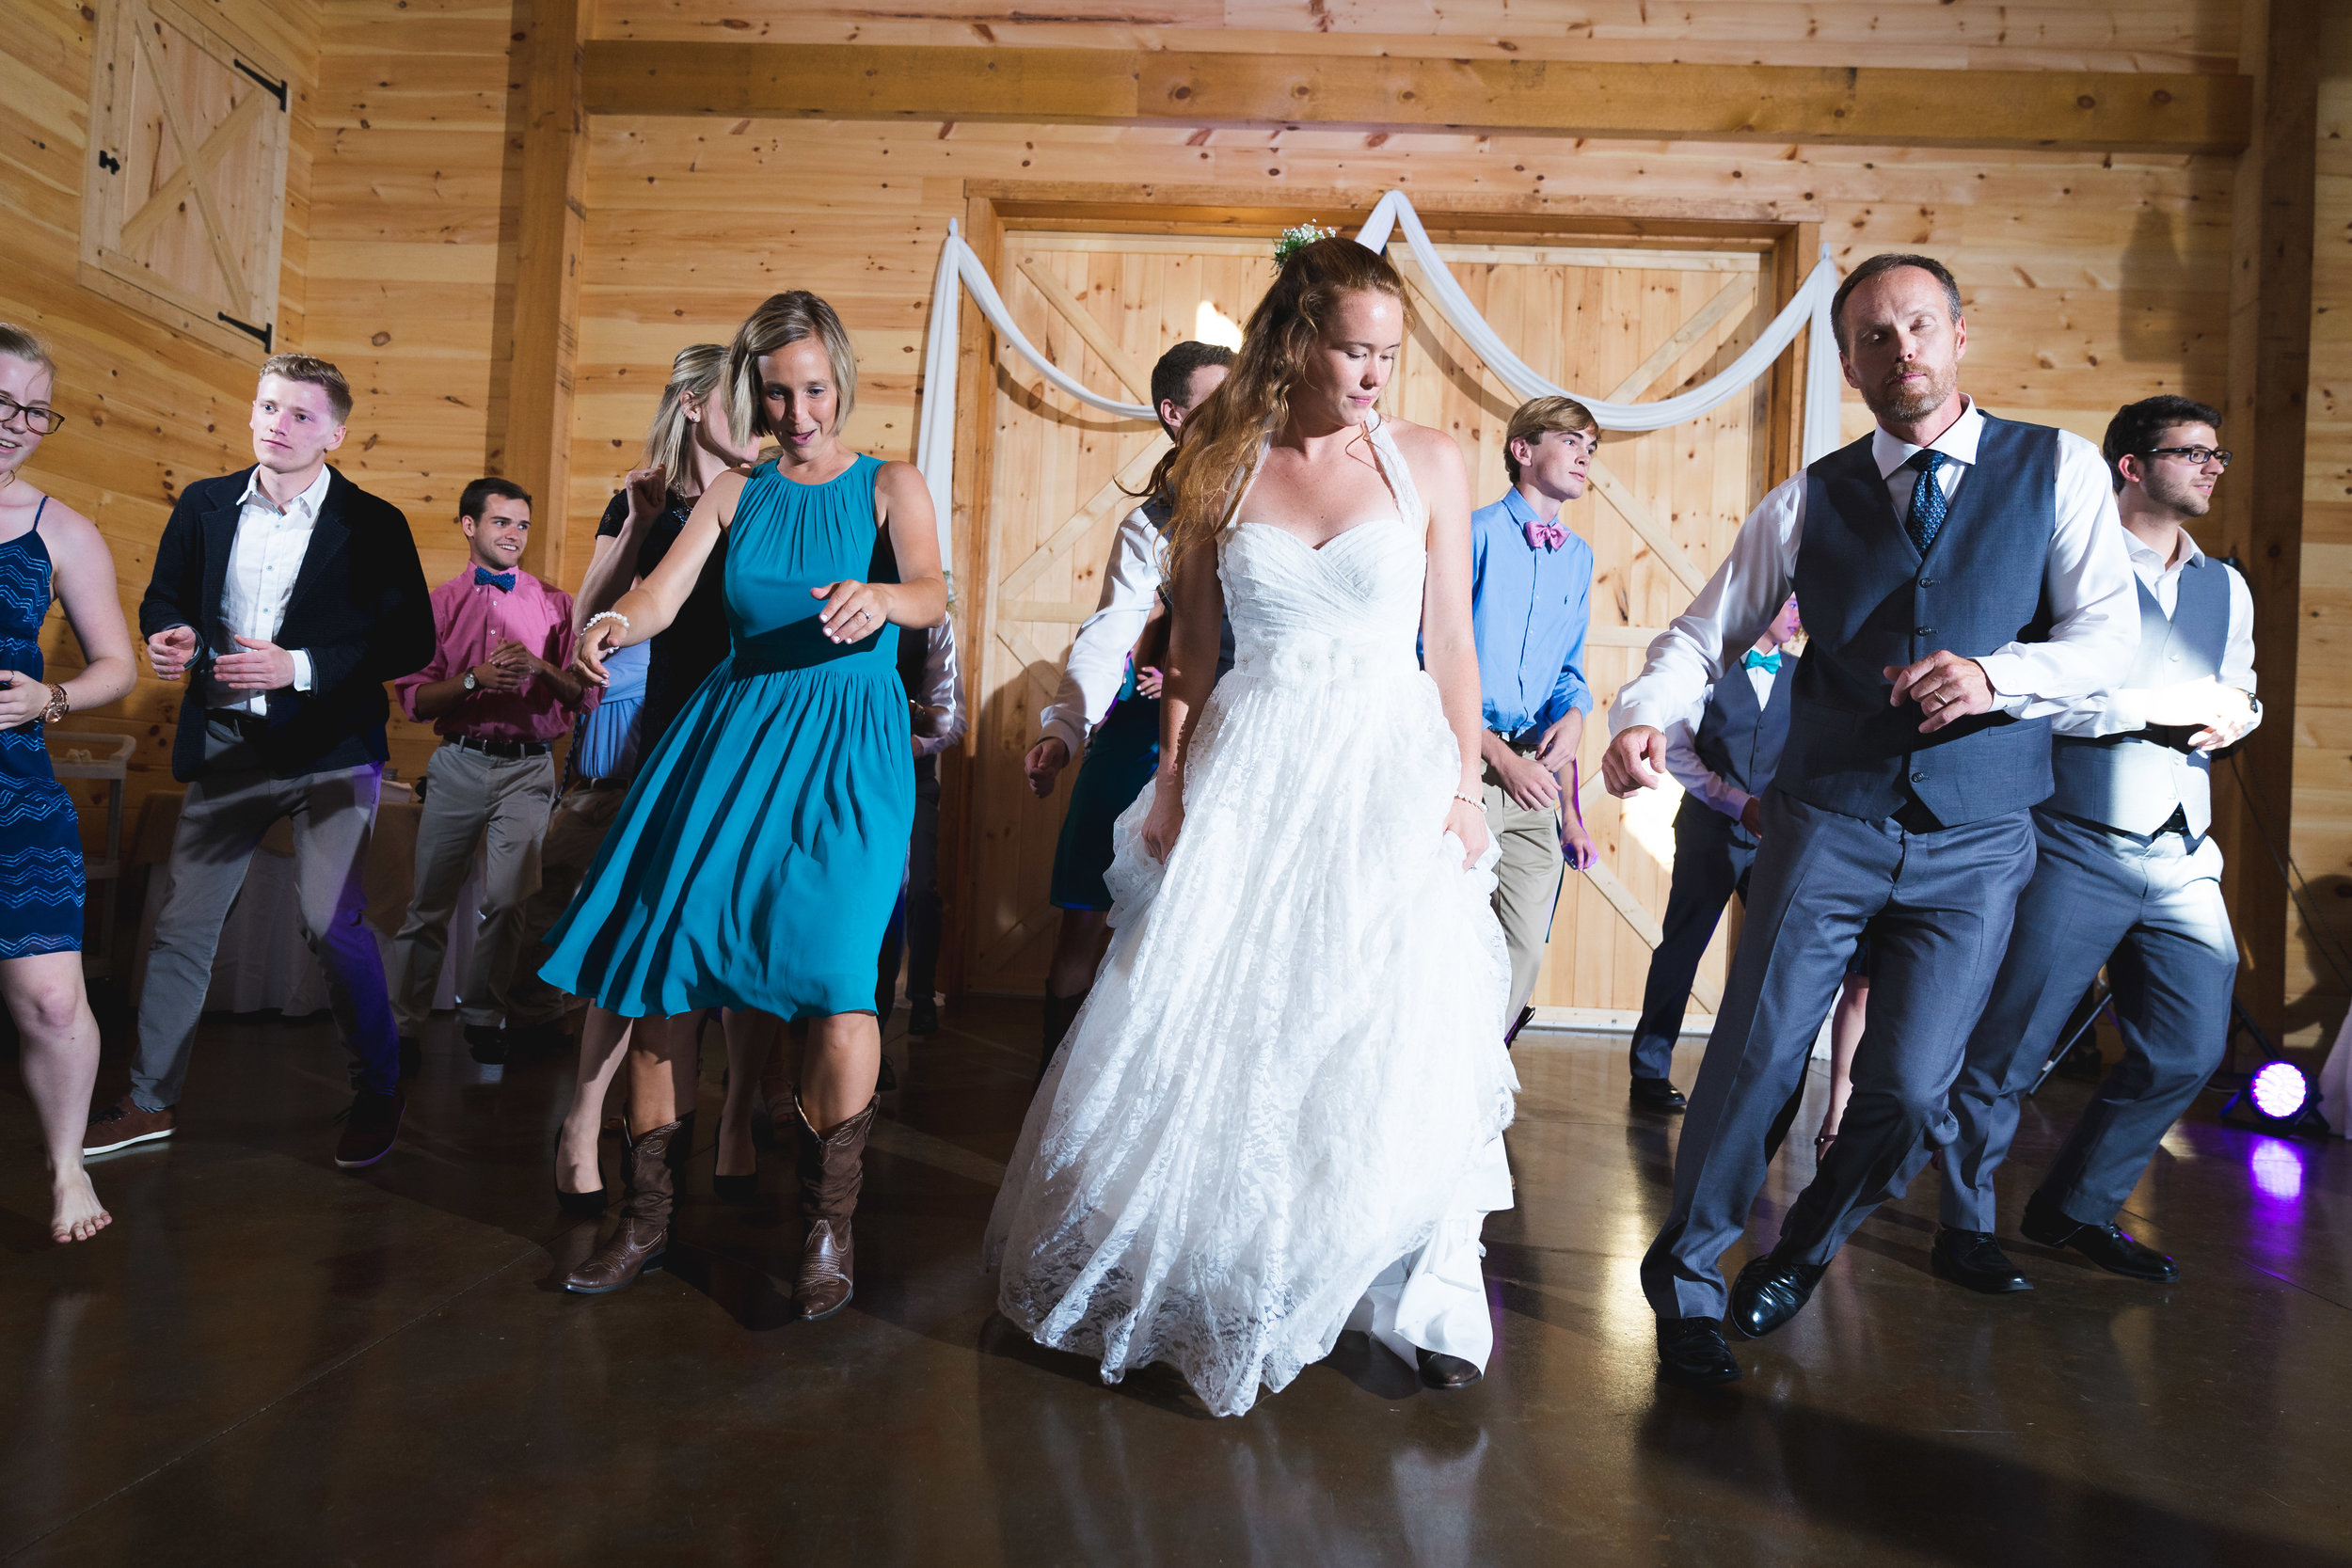 Bride dancing at reception | Windy Hill Wedding and Event Barn in Simpsonville, SC